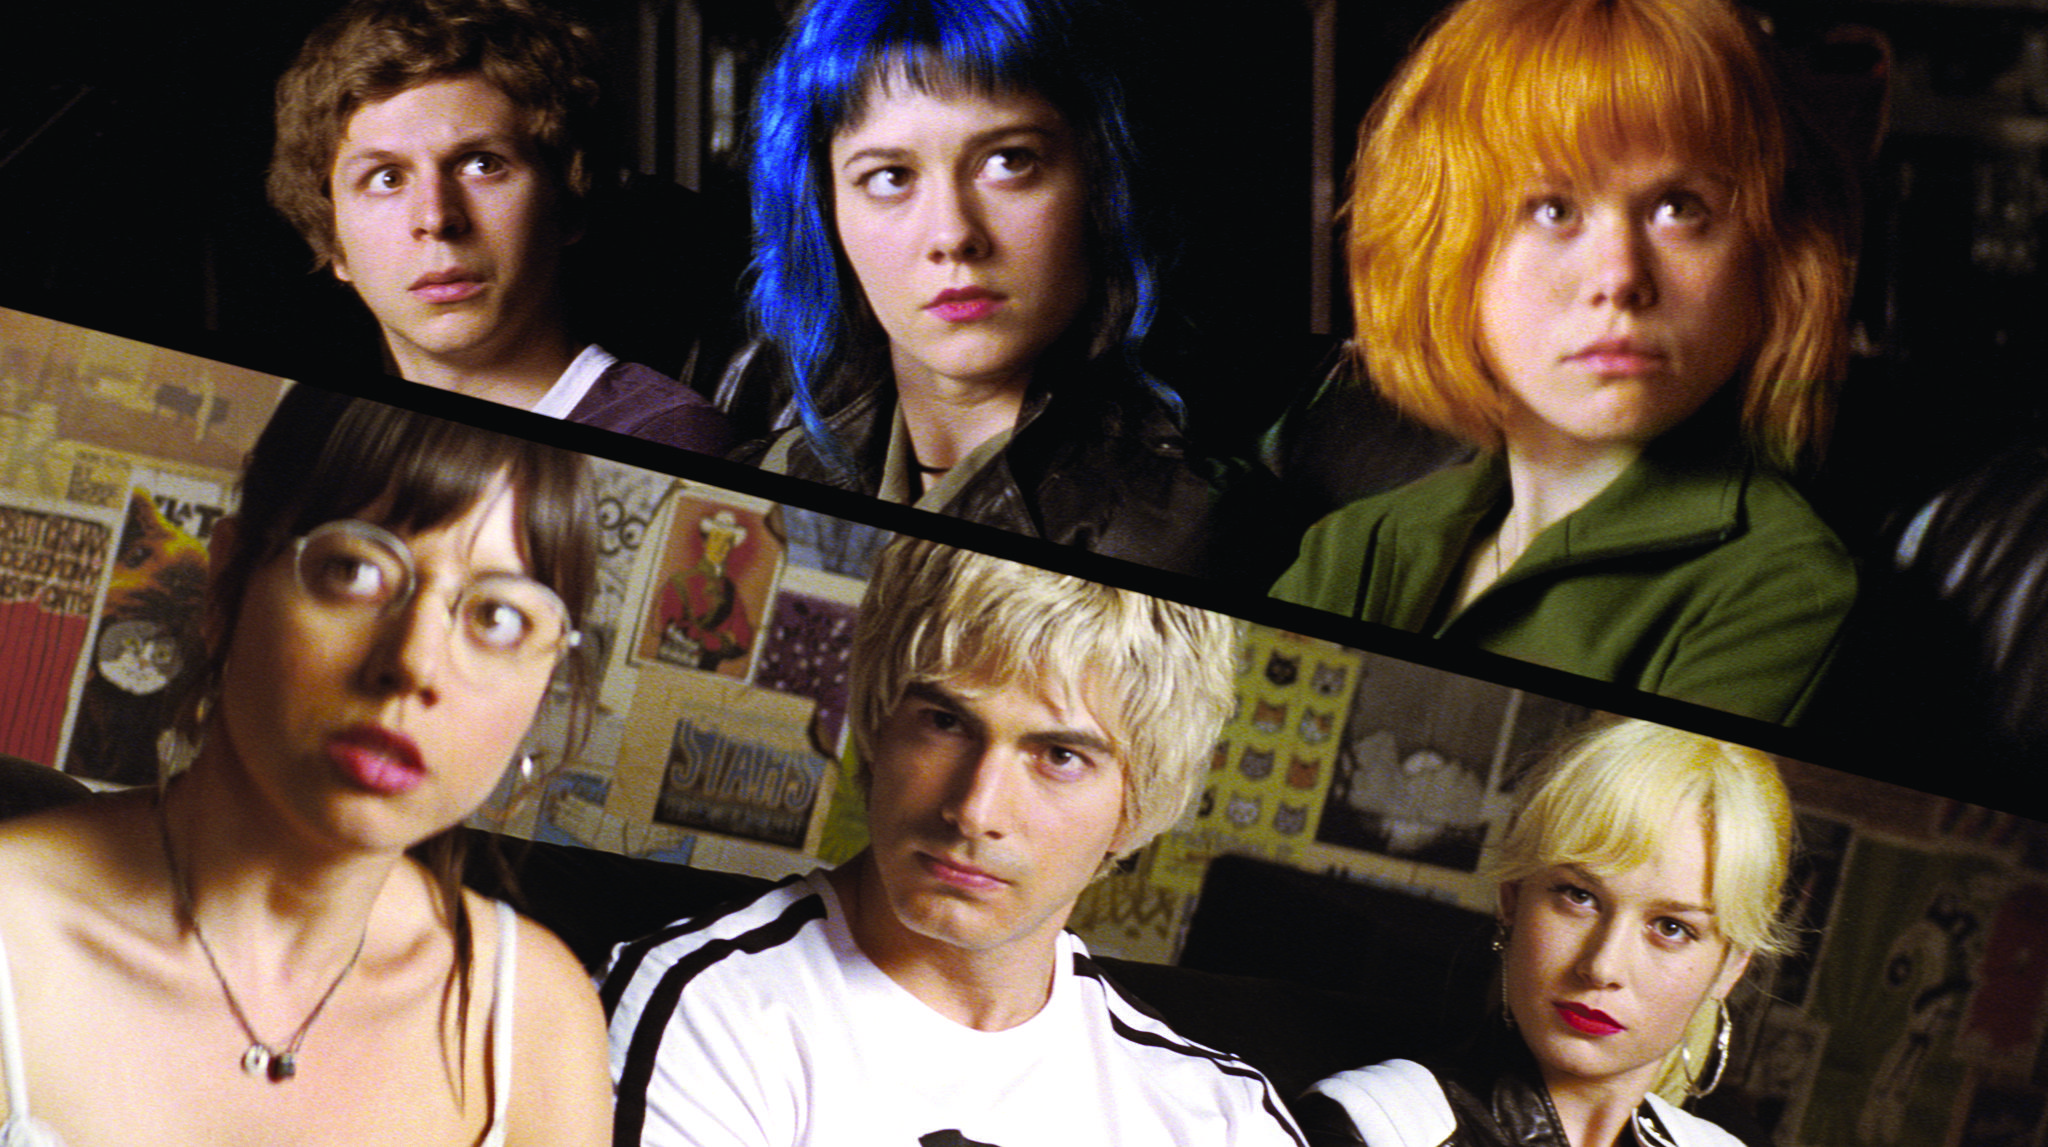 Quelle: http://www.moviepilot.de/files/images/0453/7145/Scott_Pilgrim_gegen_den_Rest_der_Welt__14_.jpg